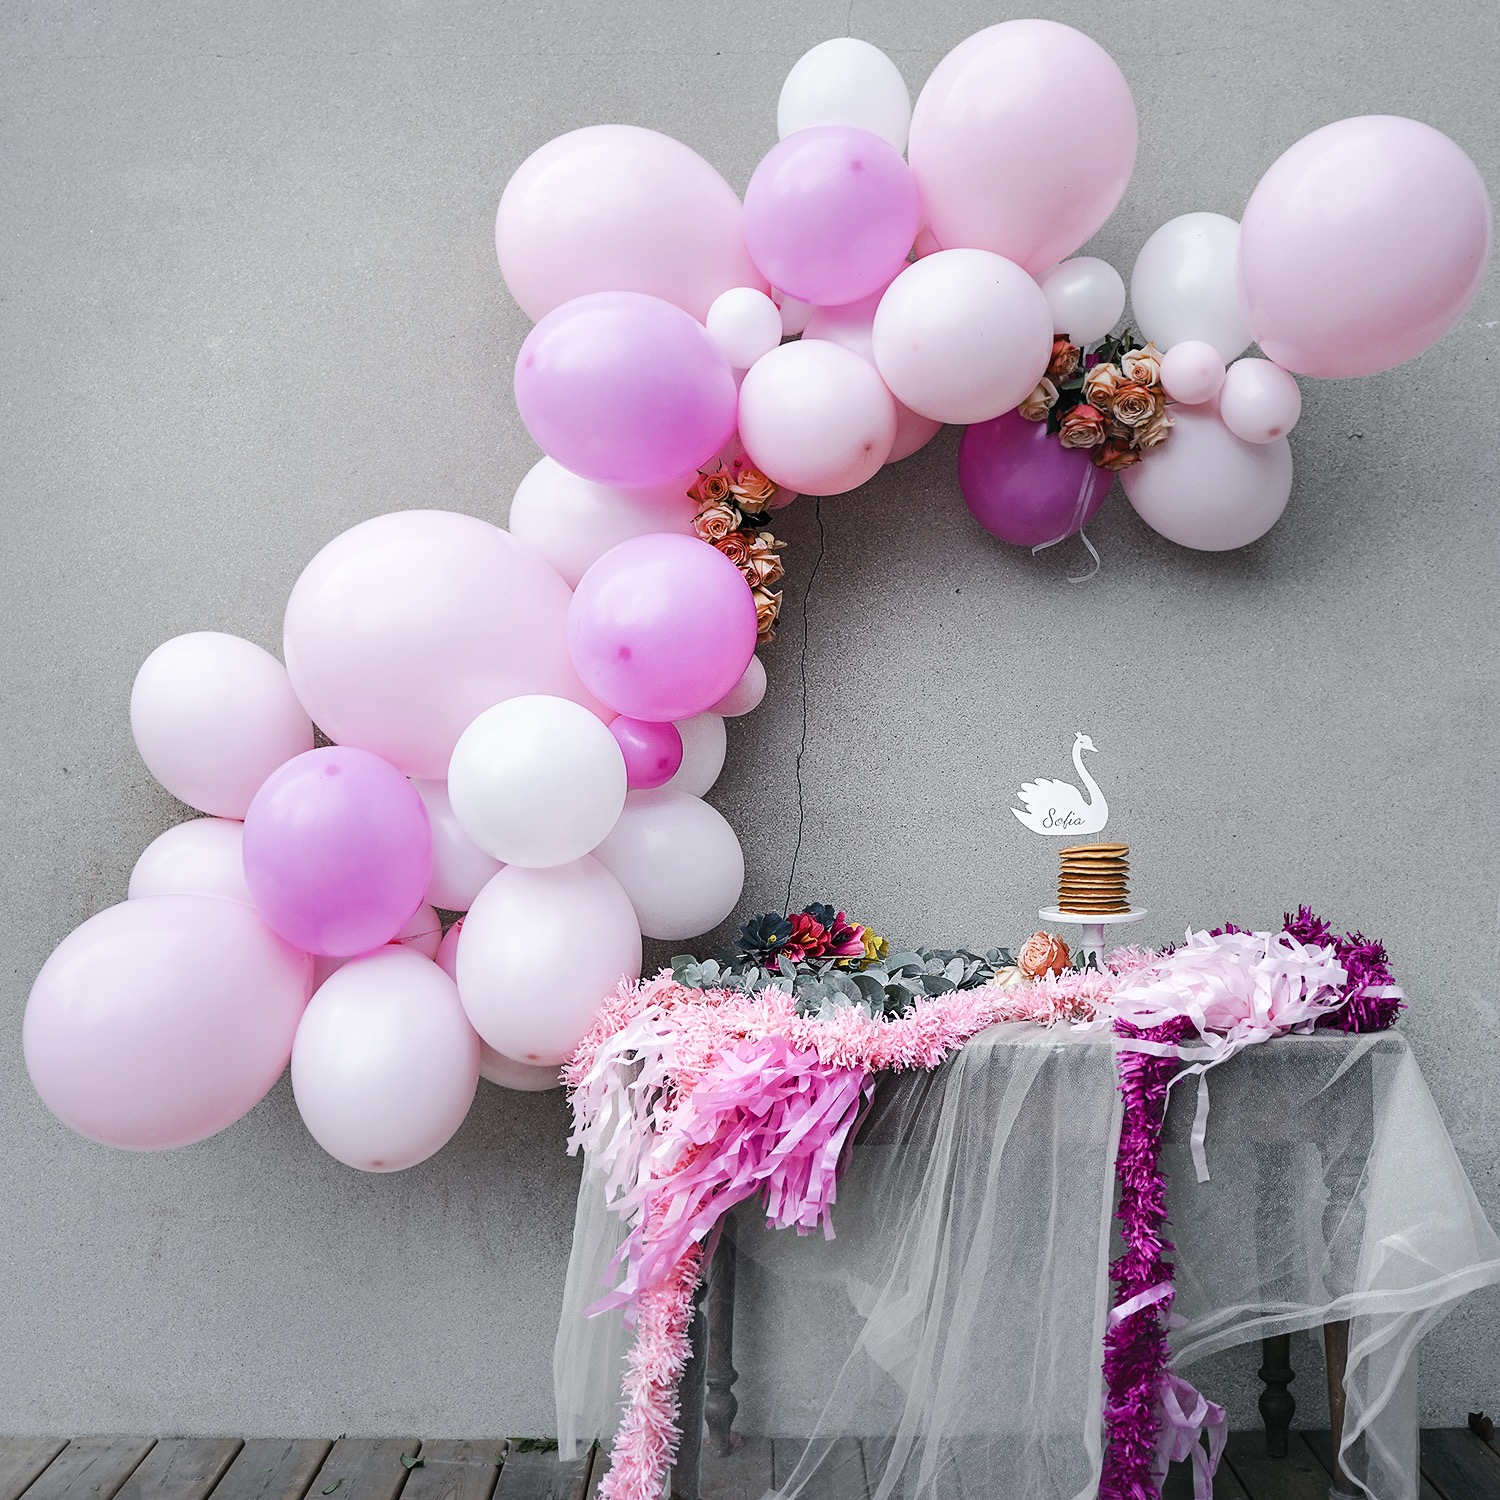 guirlande-ballon-rose-anniversaire-mariage-sweet-party-day